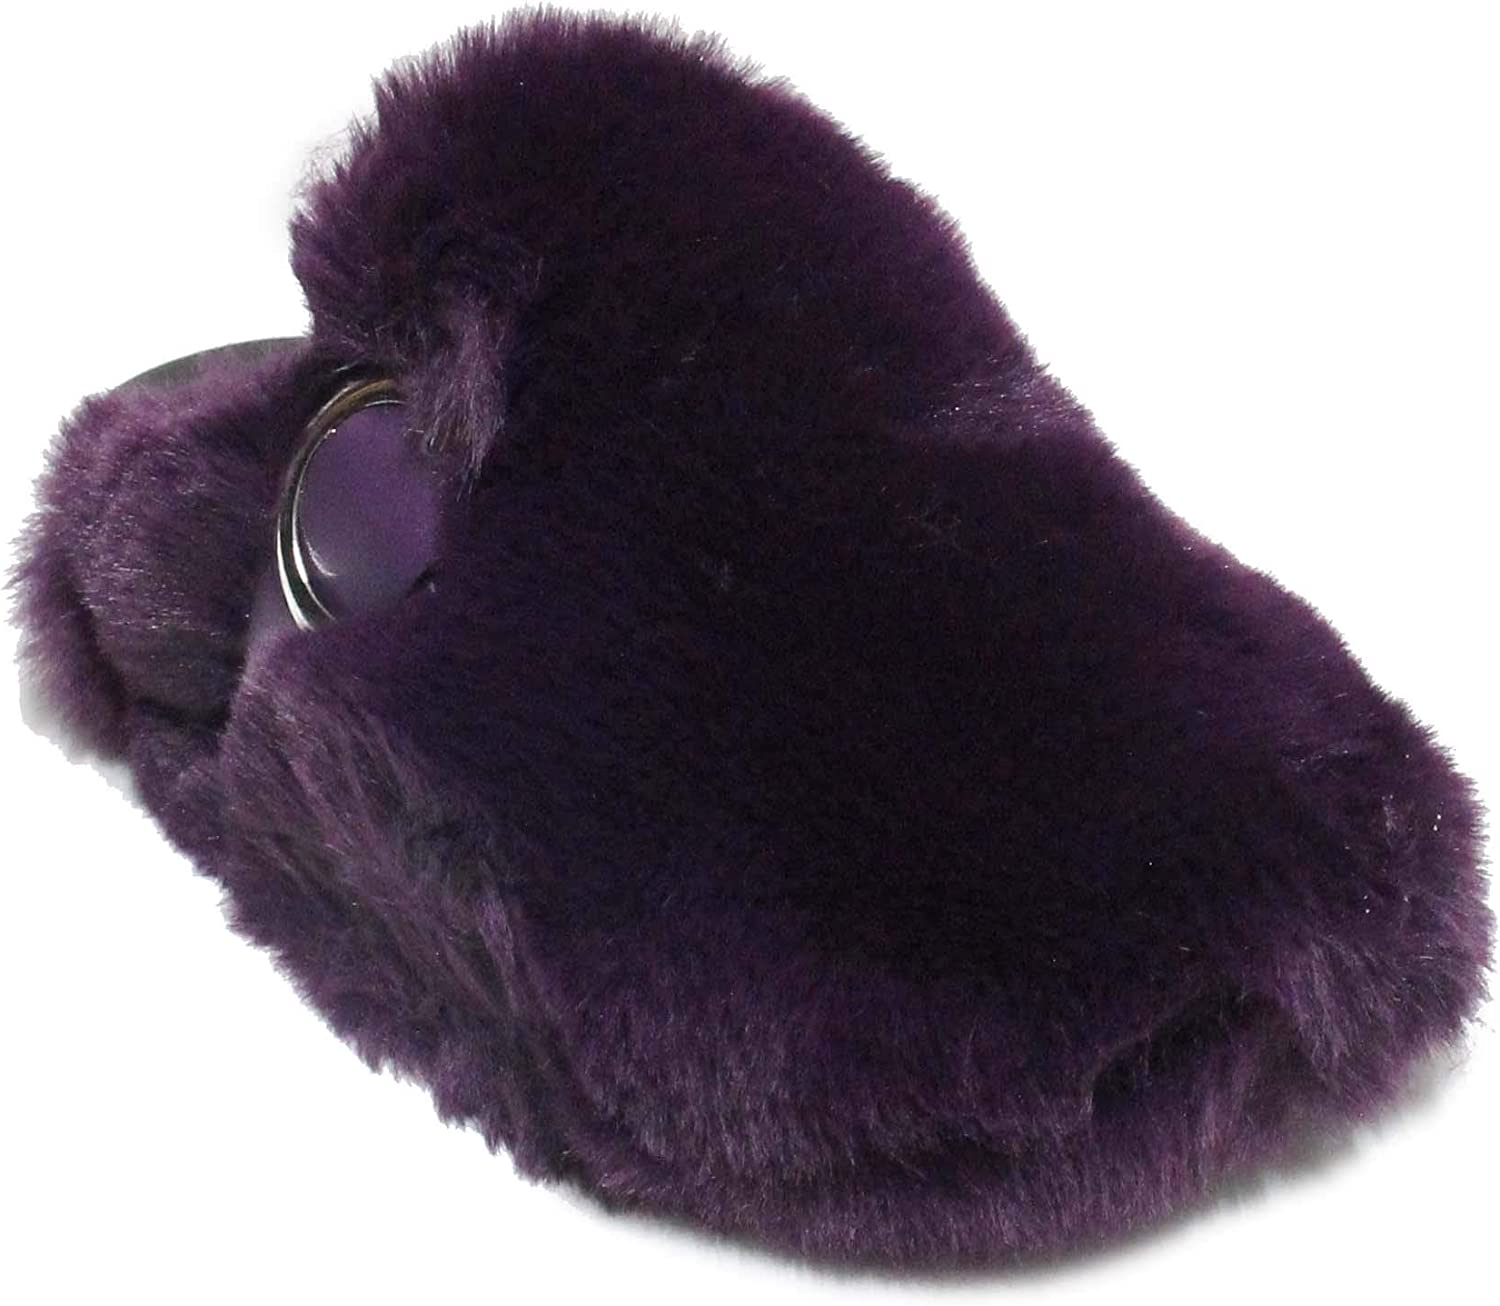 Women's Fur Slides Cute Fuzzy Slippers Comfort Slip On Closed Toe Flat Sandals Miss More 2